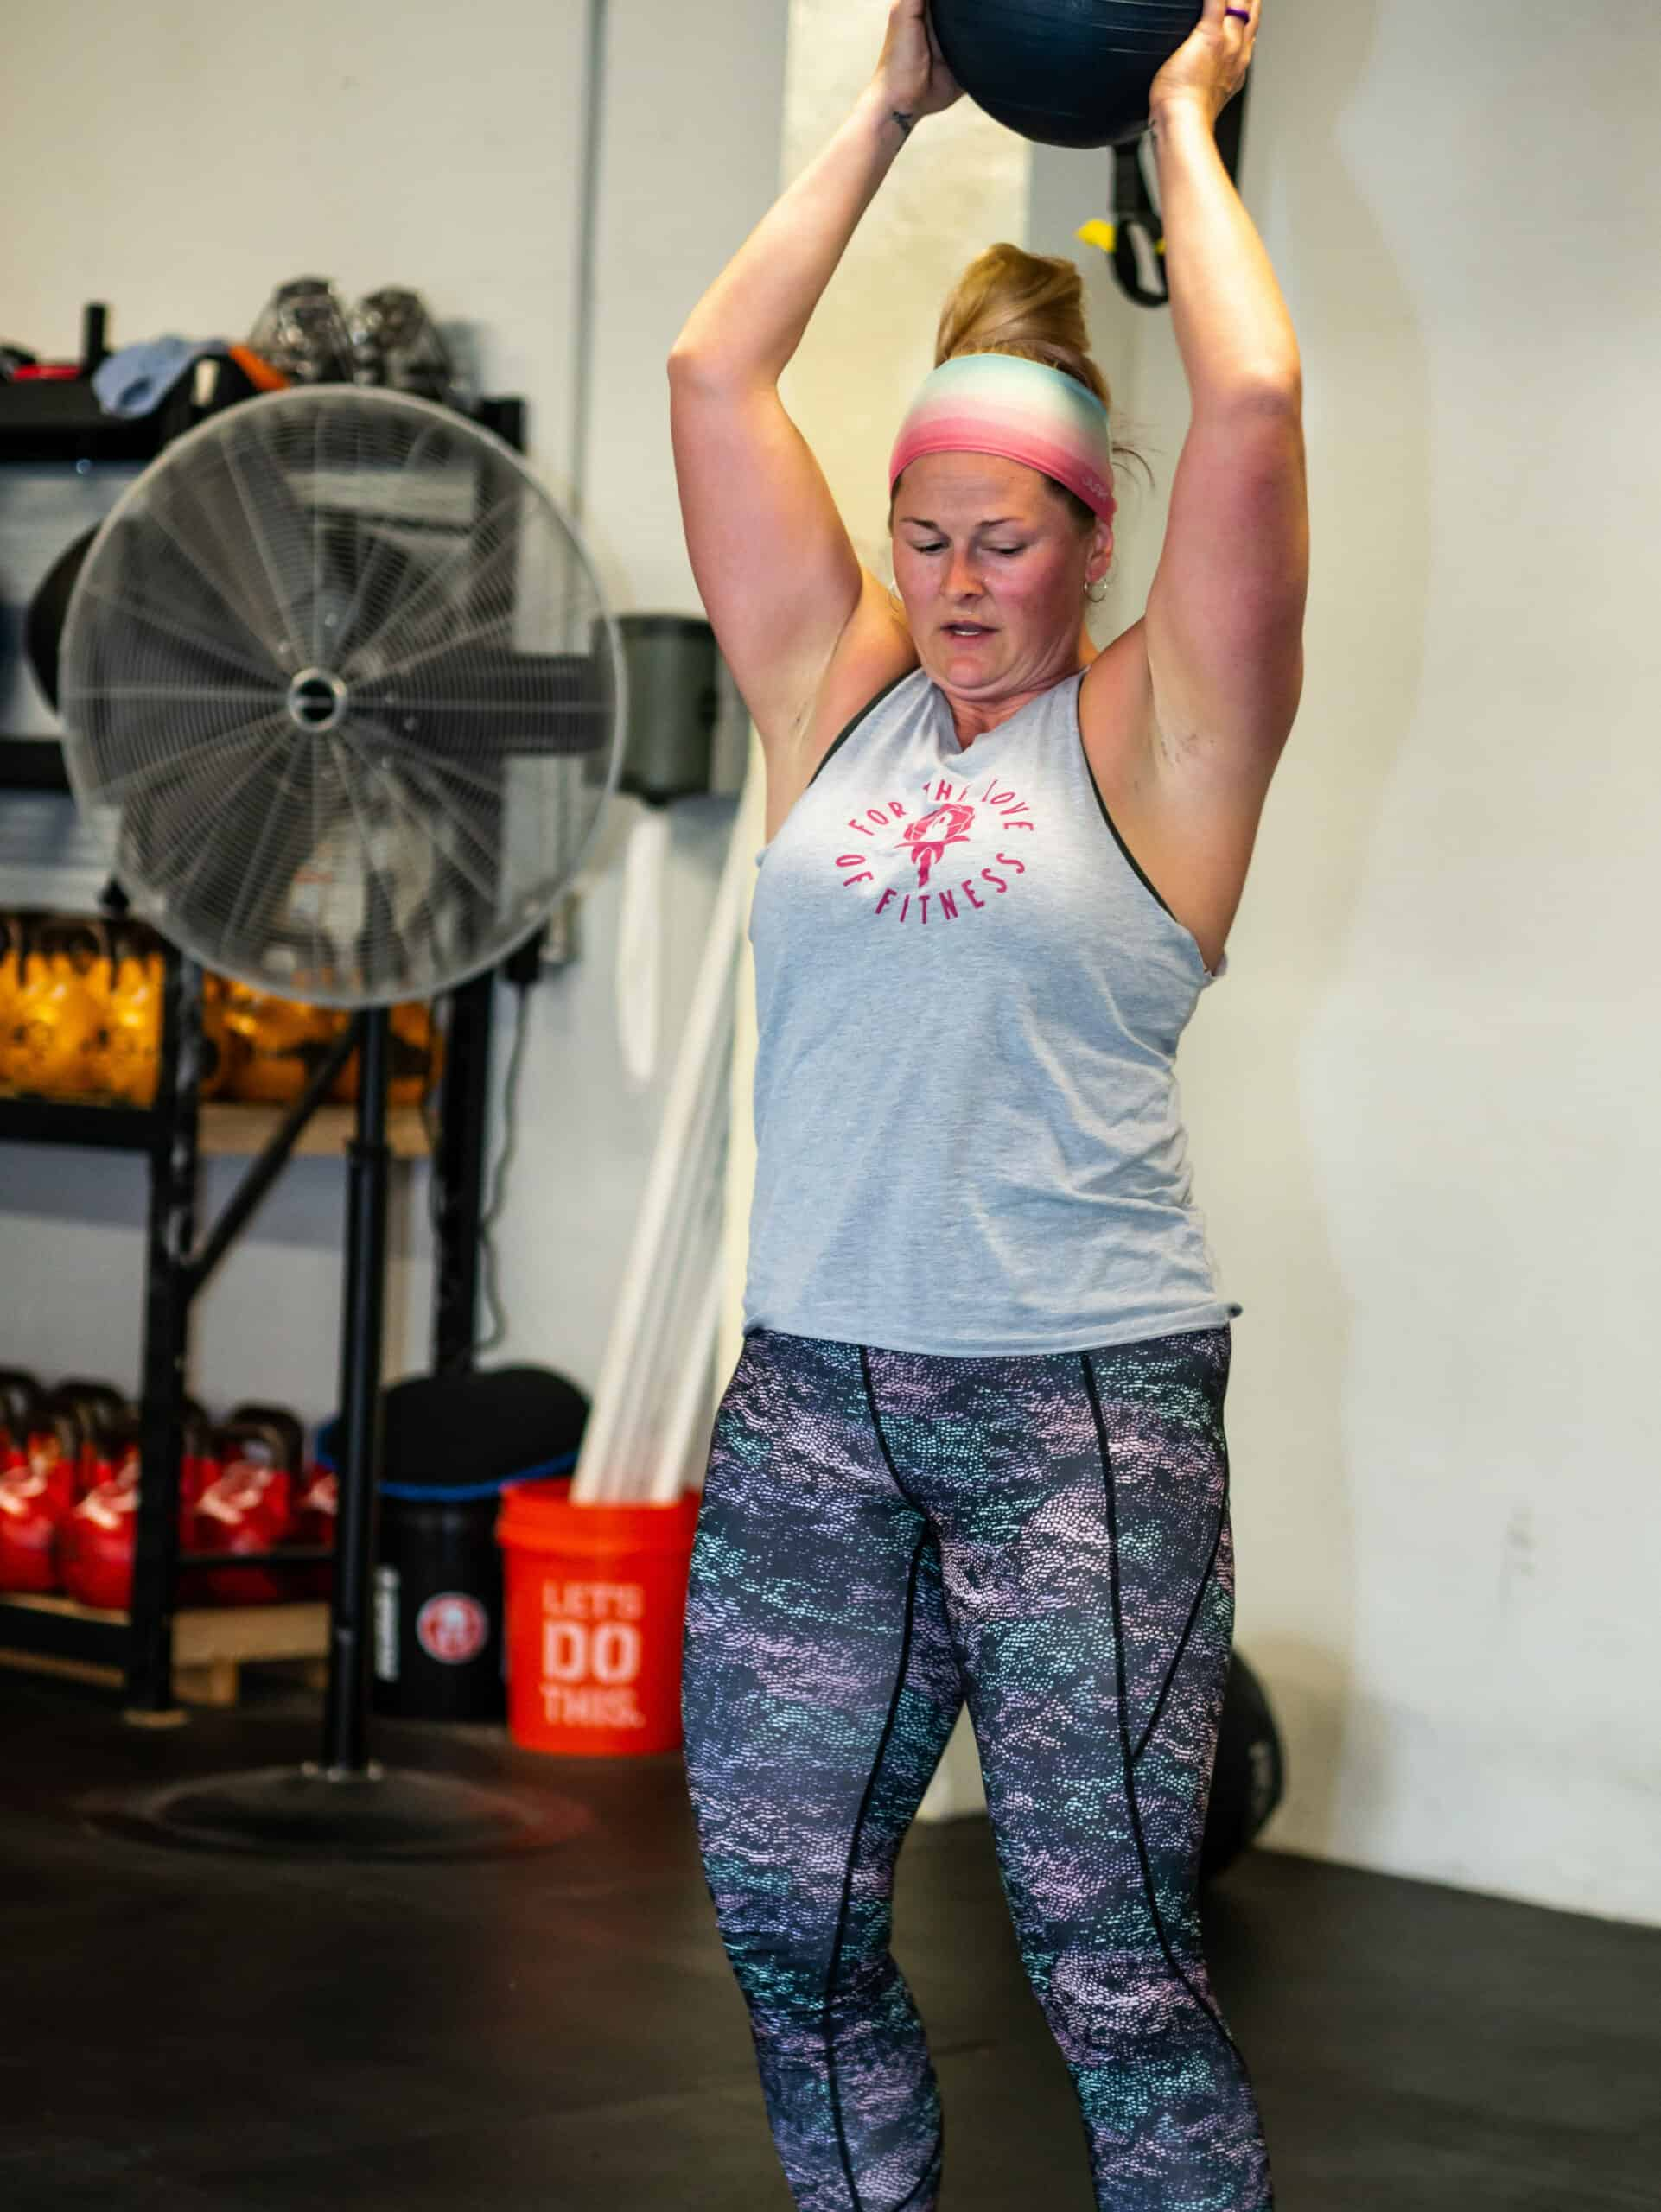 Spark Fitness team member training with a medicine ball at the fitness center